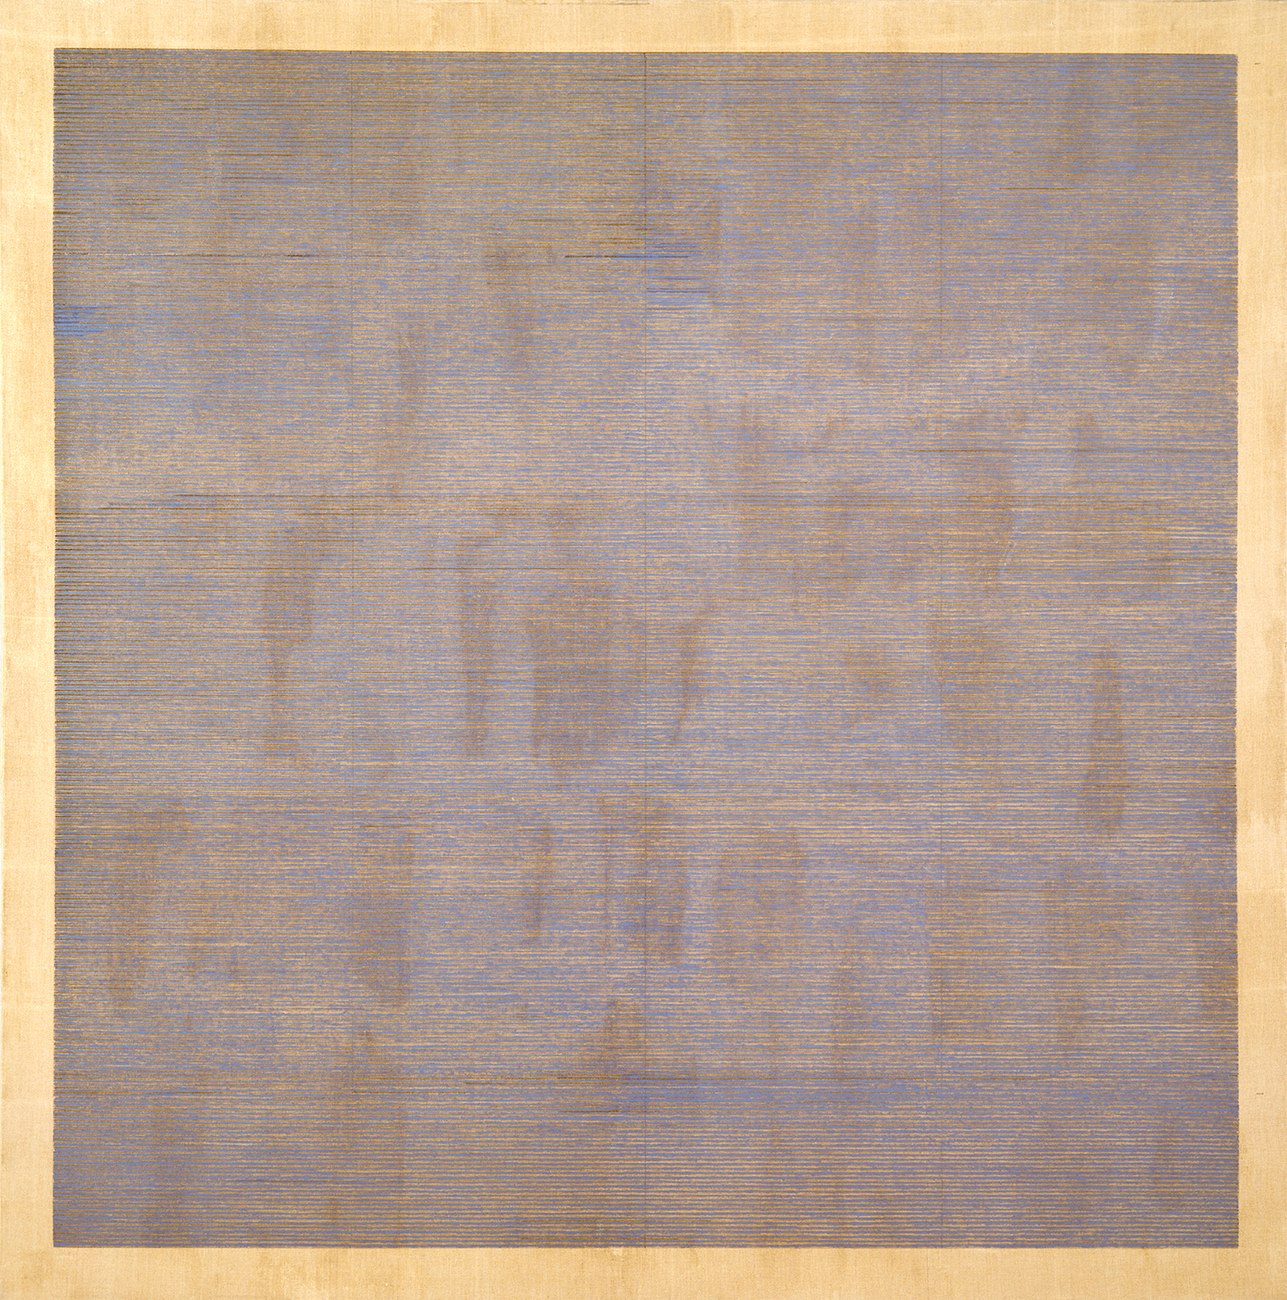 A subtle grid of mostly horizontal blue and brown lines on a yellowish background